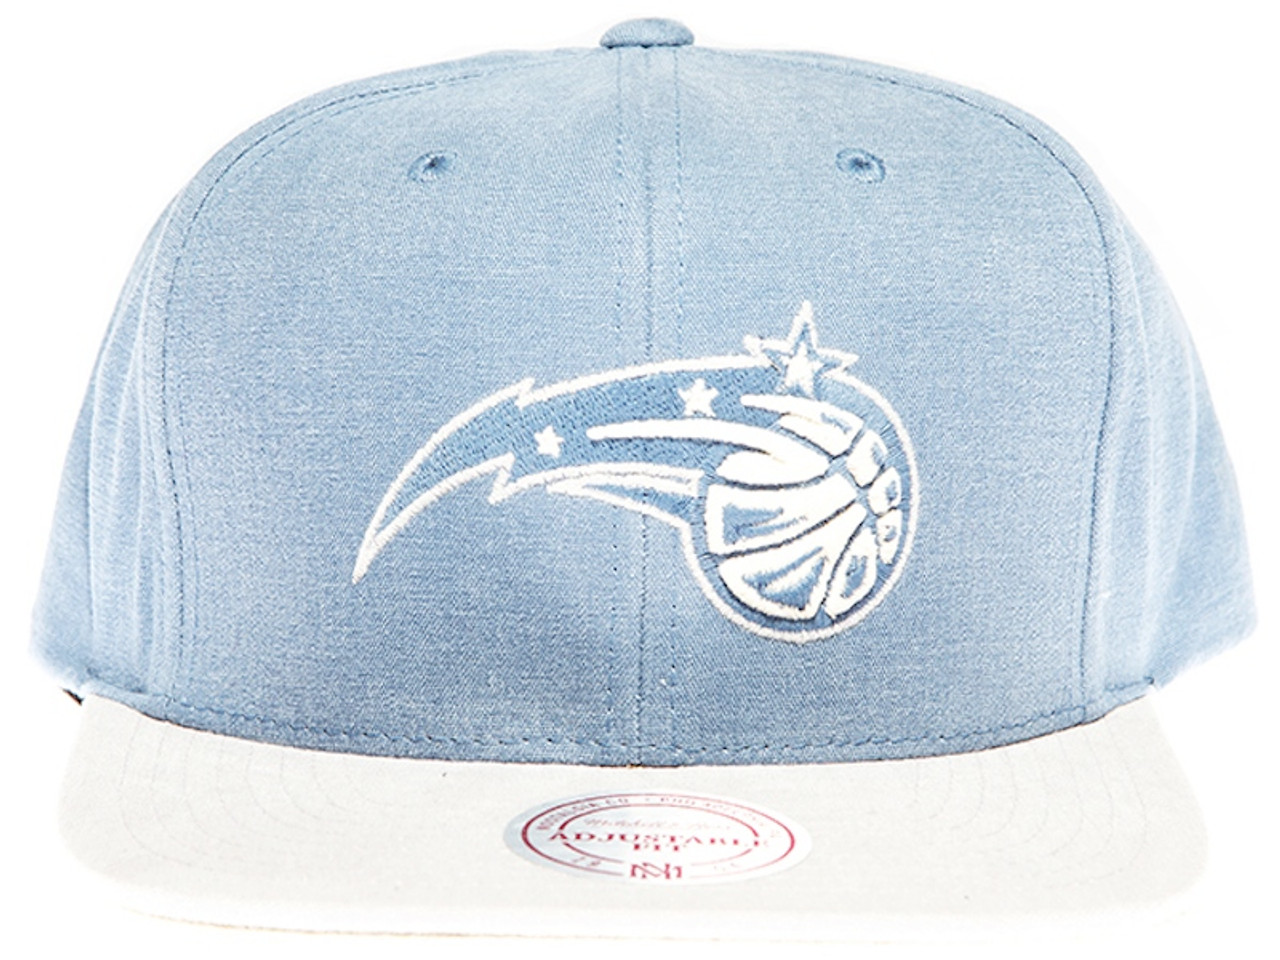 brand new 95d92 cdc4b official orlando magic sandy 2 tone blue and grey mitchell ness nba snapback  hat f5b9f 02536